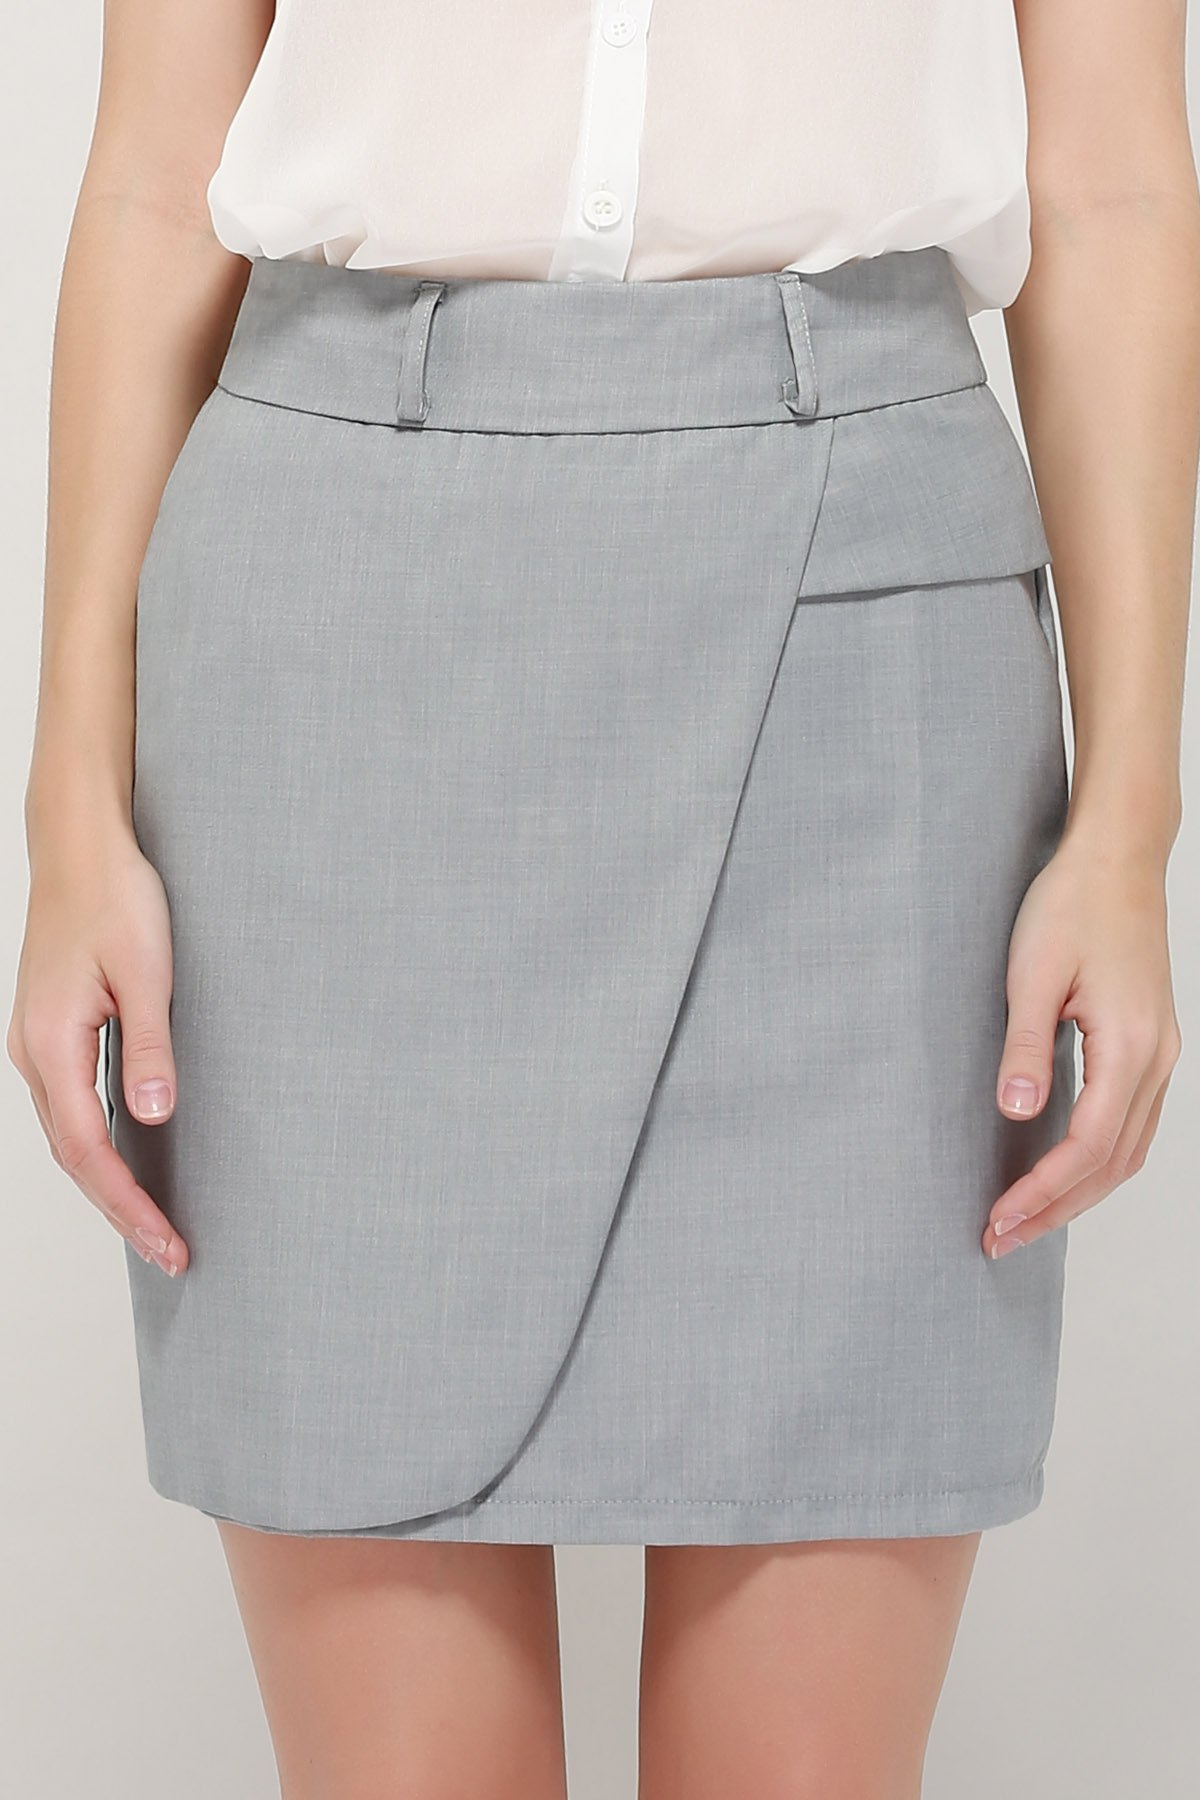 Graceful OL Style Womens Pencil Skirt(With Belt)Women<br><br><br>Size: L<br>Color: GRAY